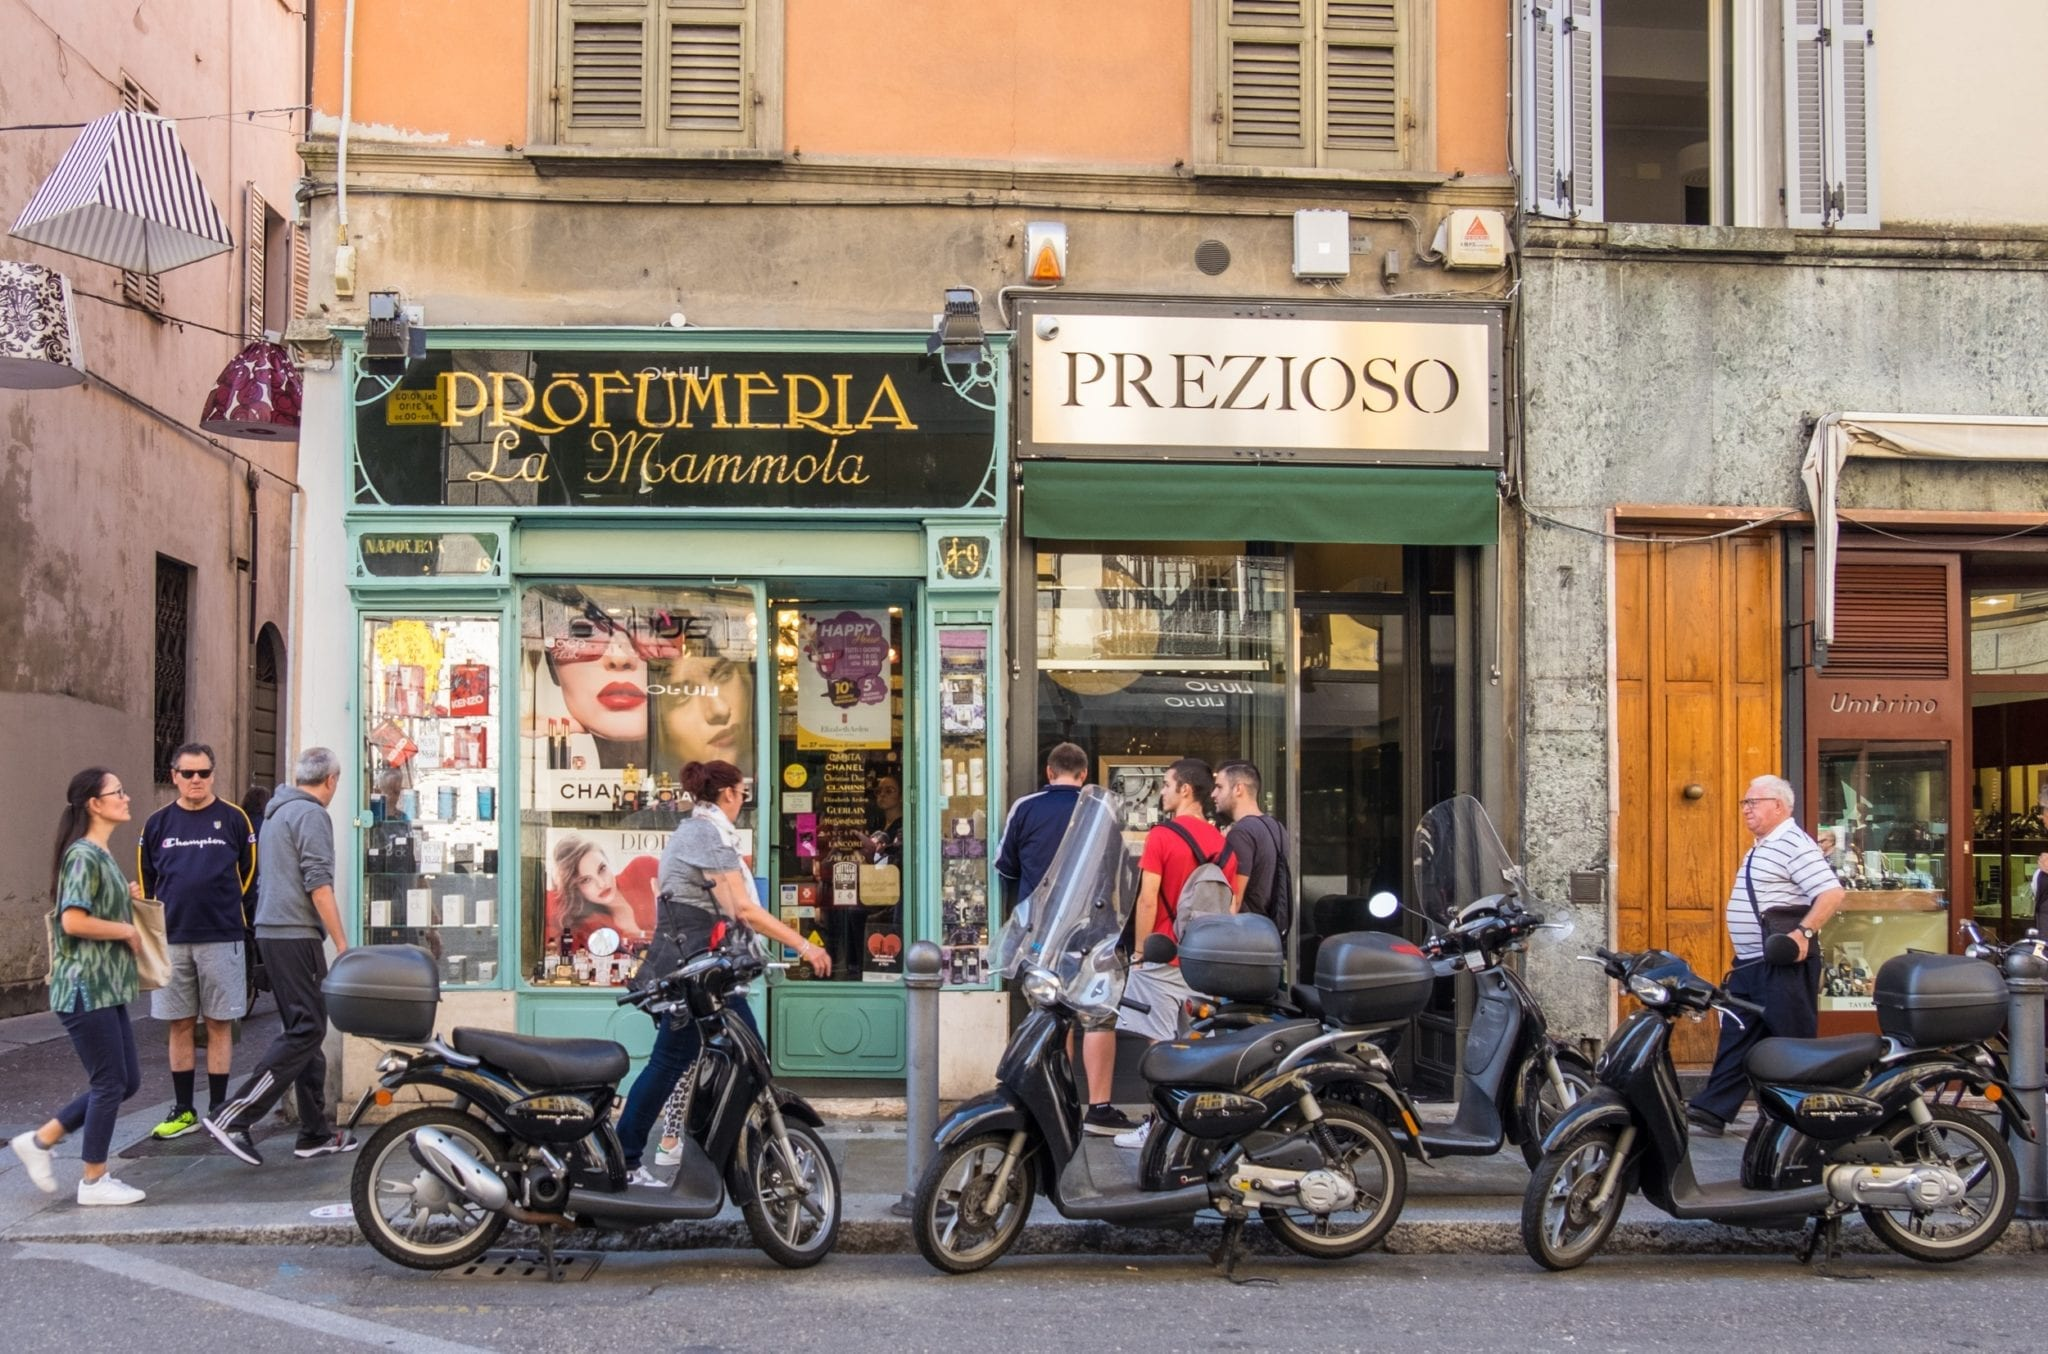 Old-fashioned stores painted green side by side in Parma, Italy, with motorbikes parked in front and people walking by.